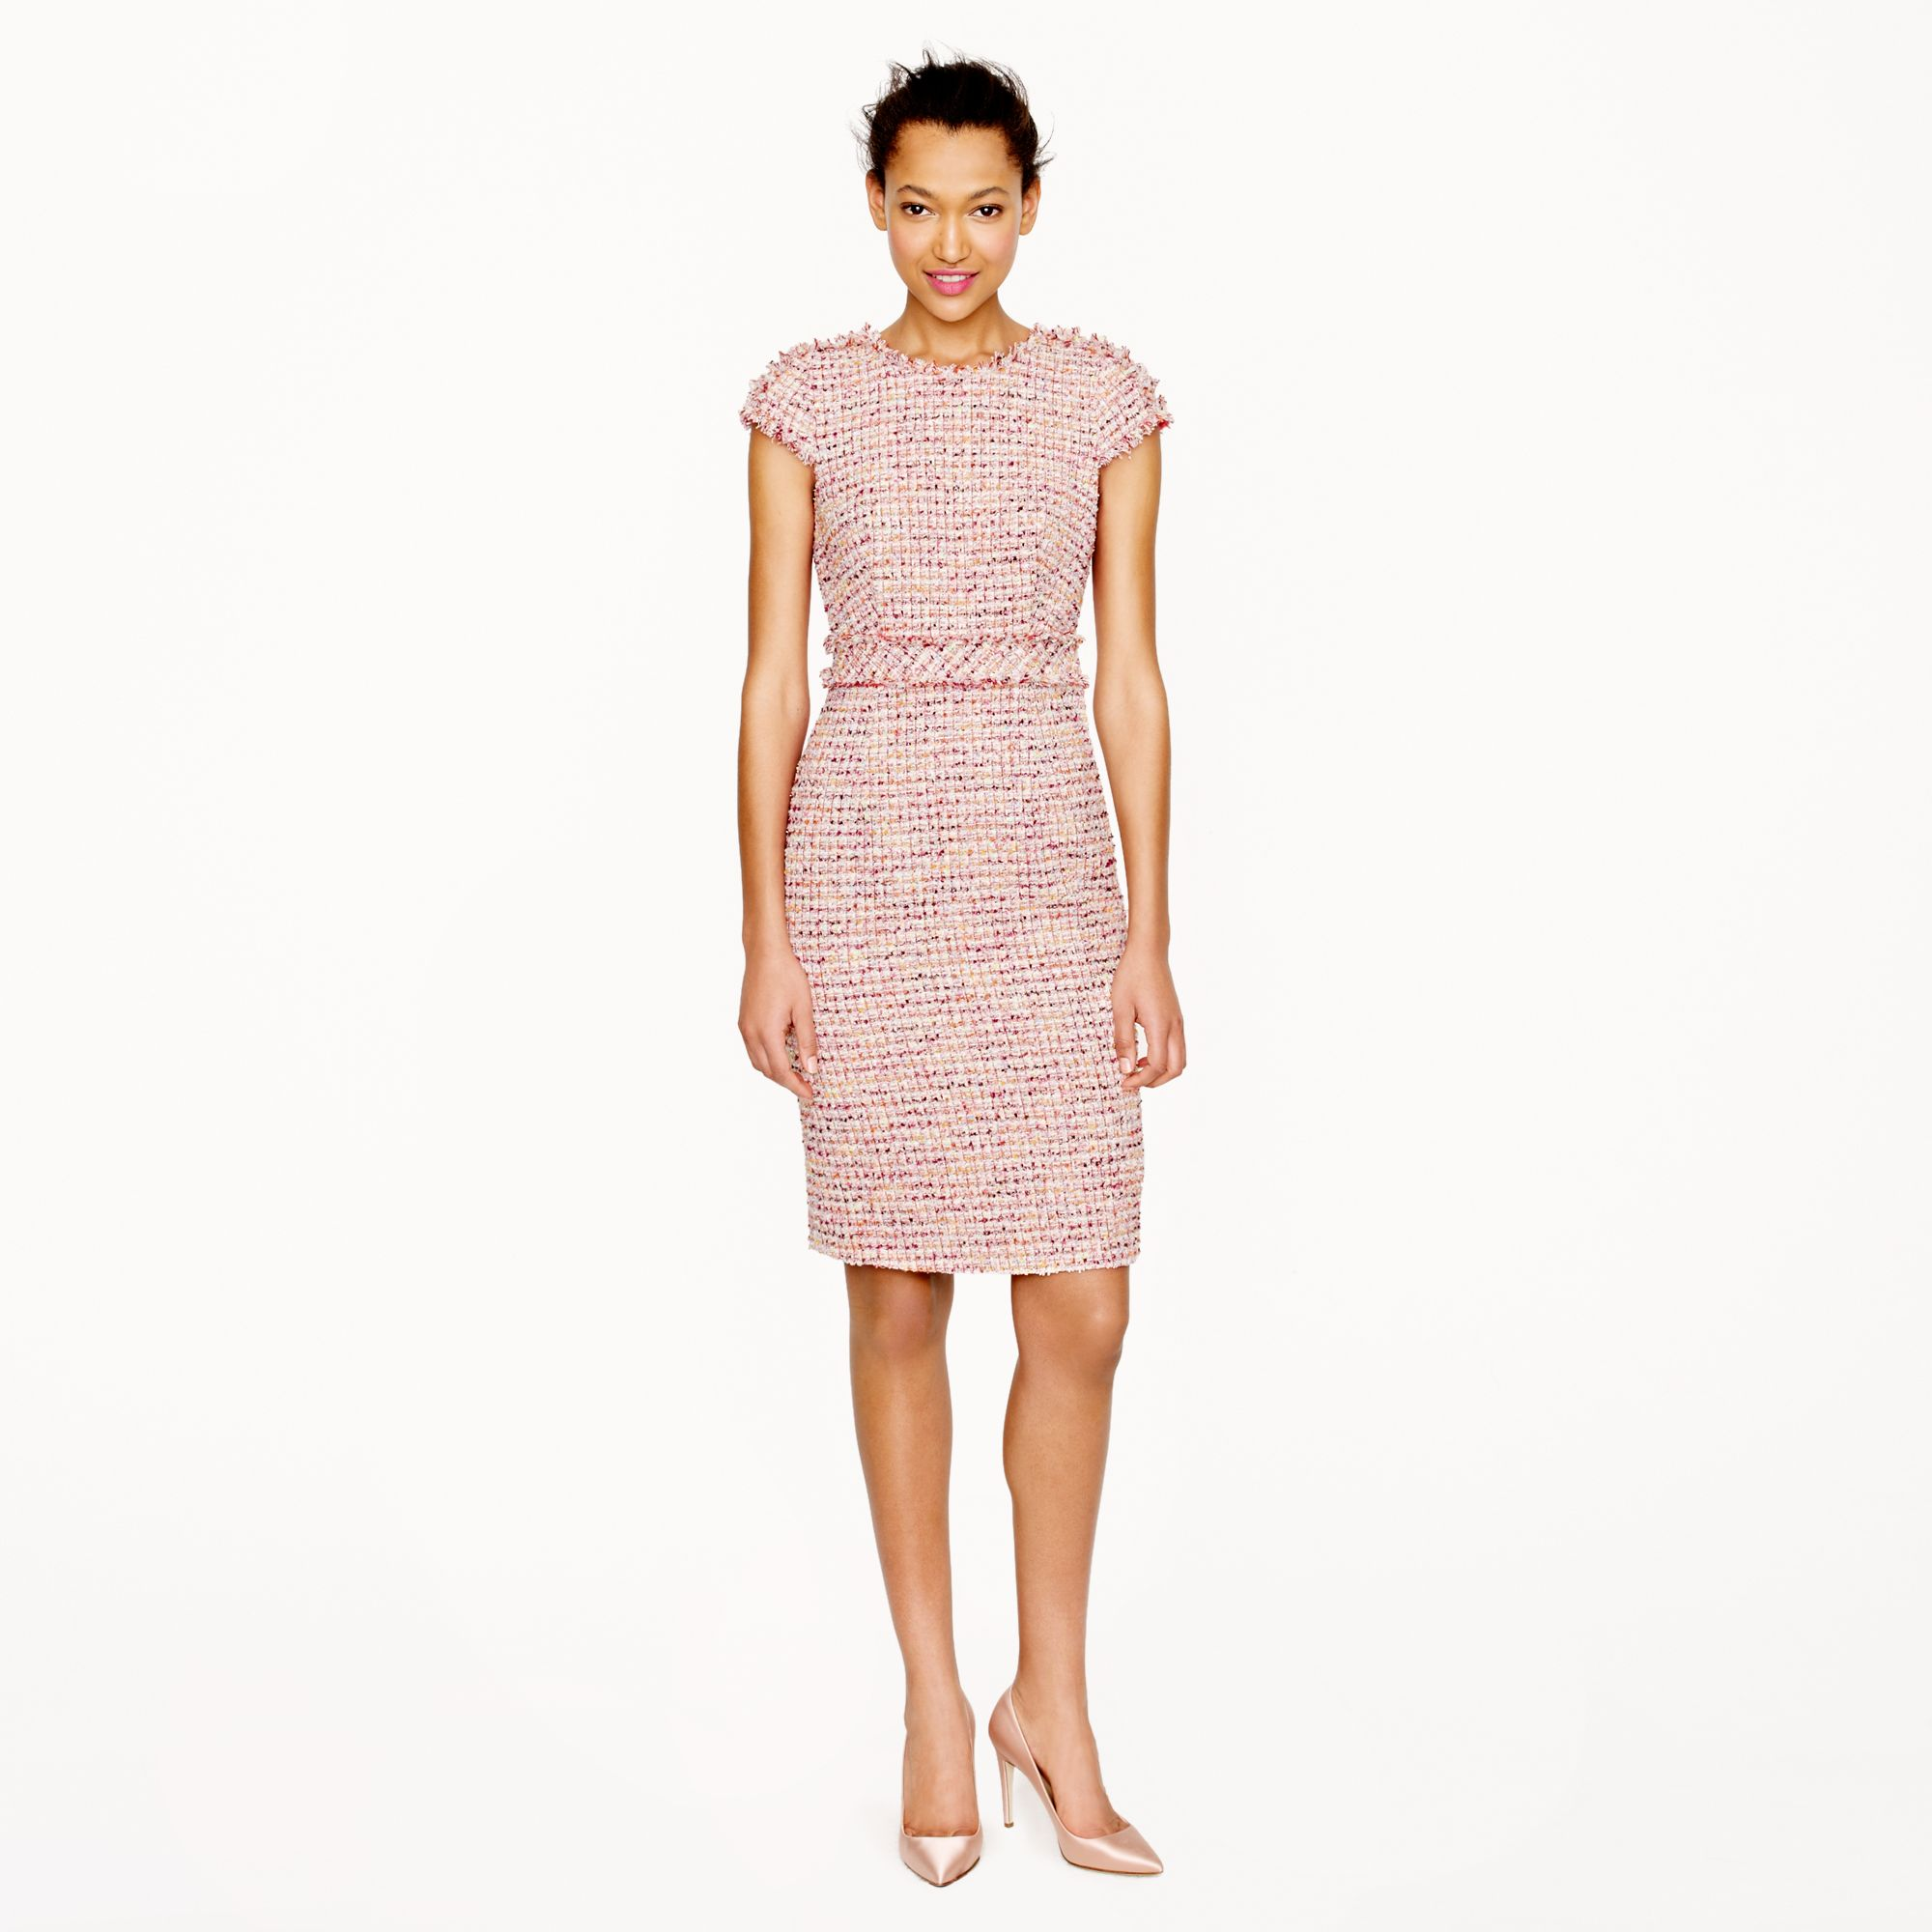 Shop the Women's Sheath Dress In Tweed at xajk8note.ml and see the entire selection of Women's Dresses. Free Shipping Available.